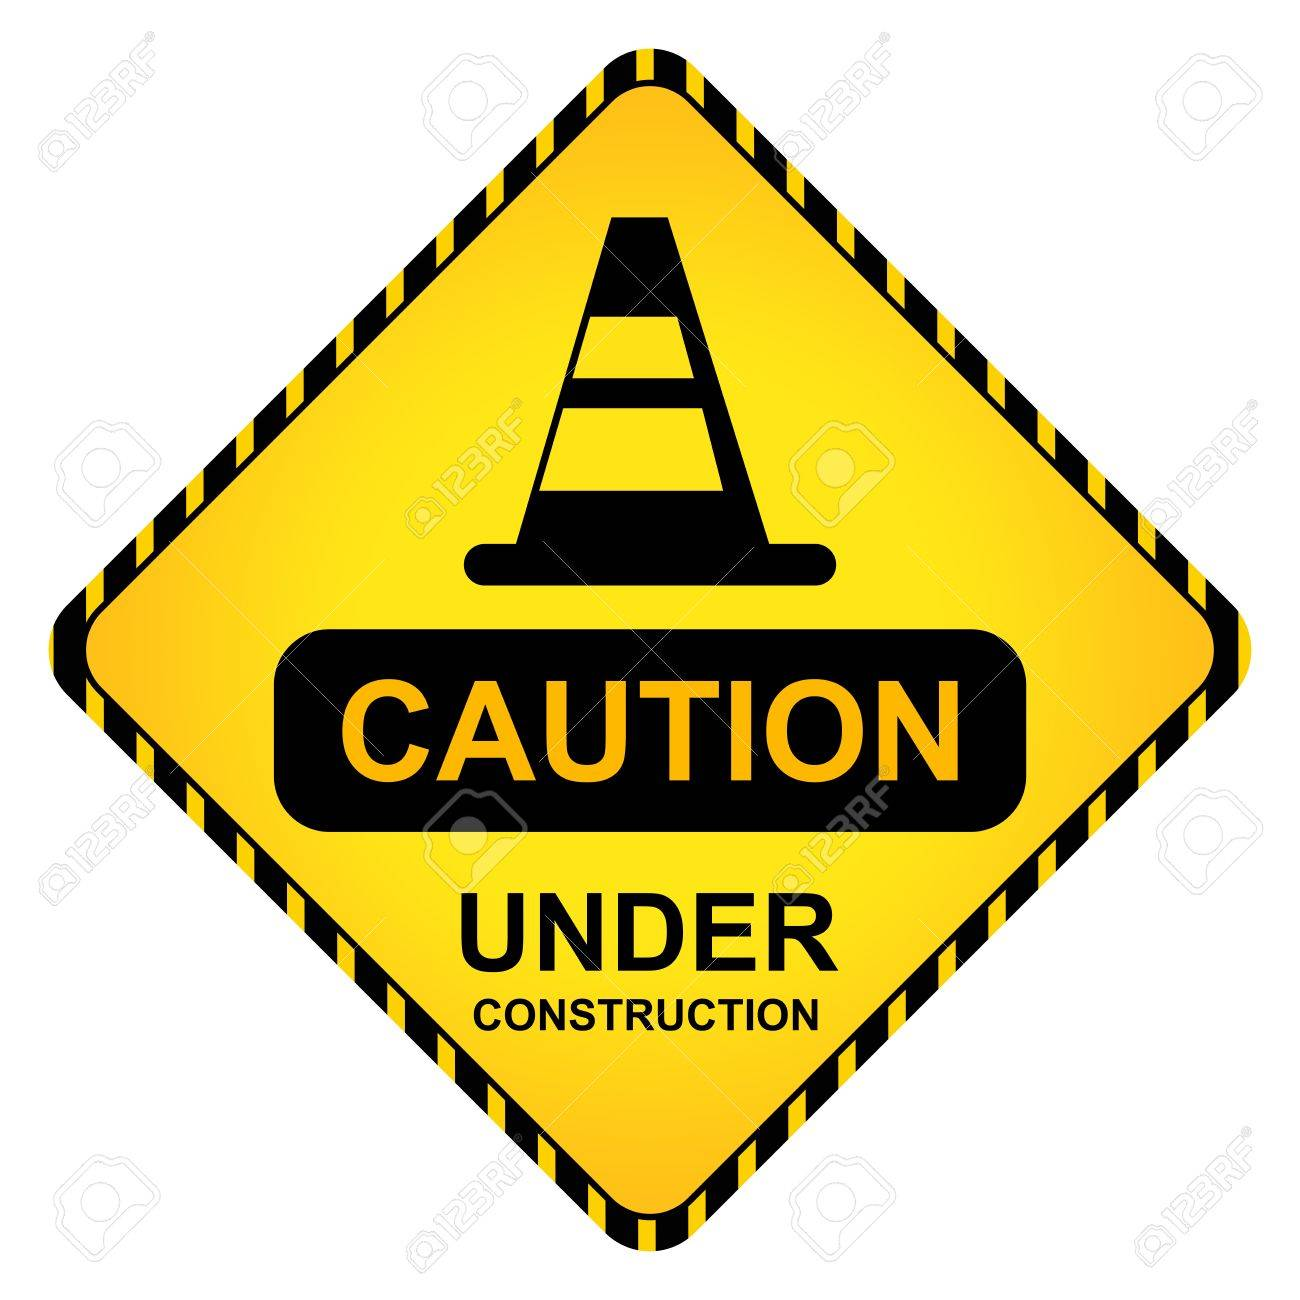 Yellow Caution Under Construction Traffic Sign With Traffic Cone Isolate on White Background Stock Photo - 14768308